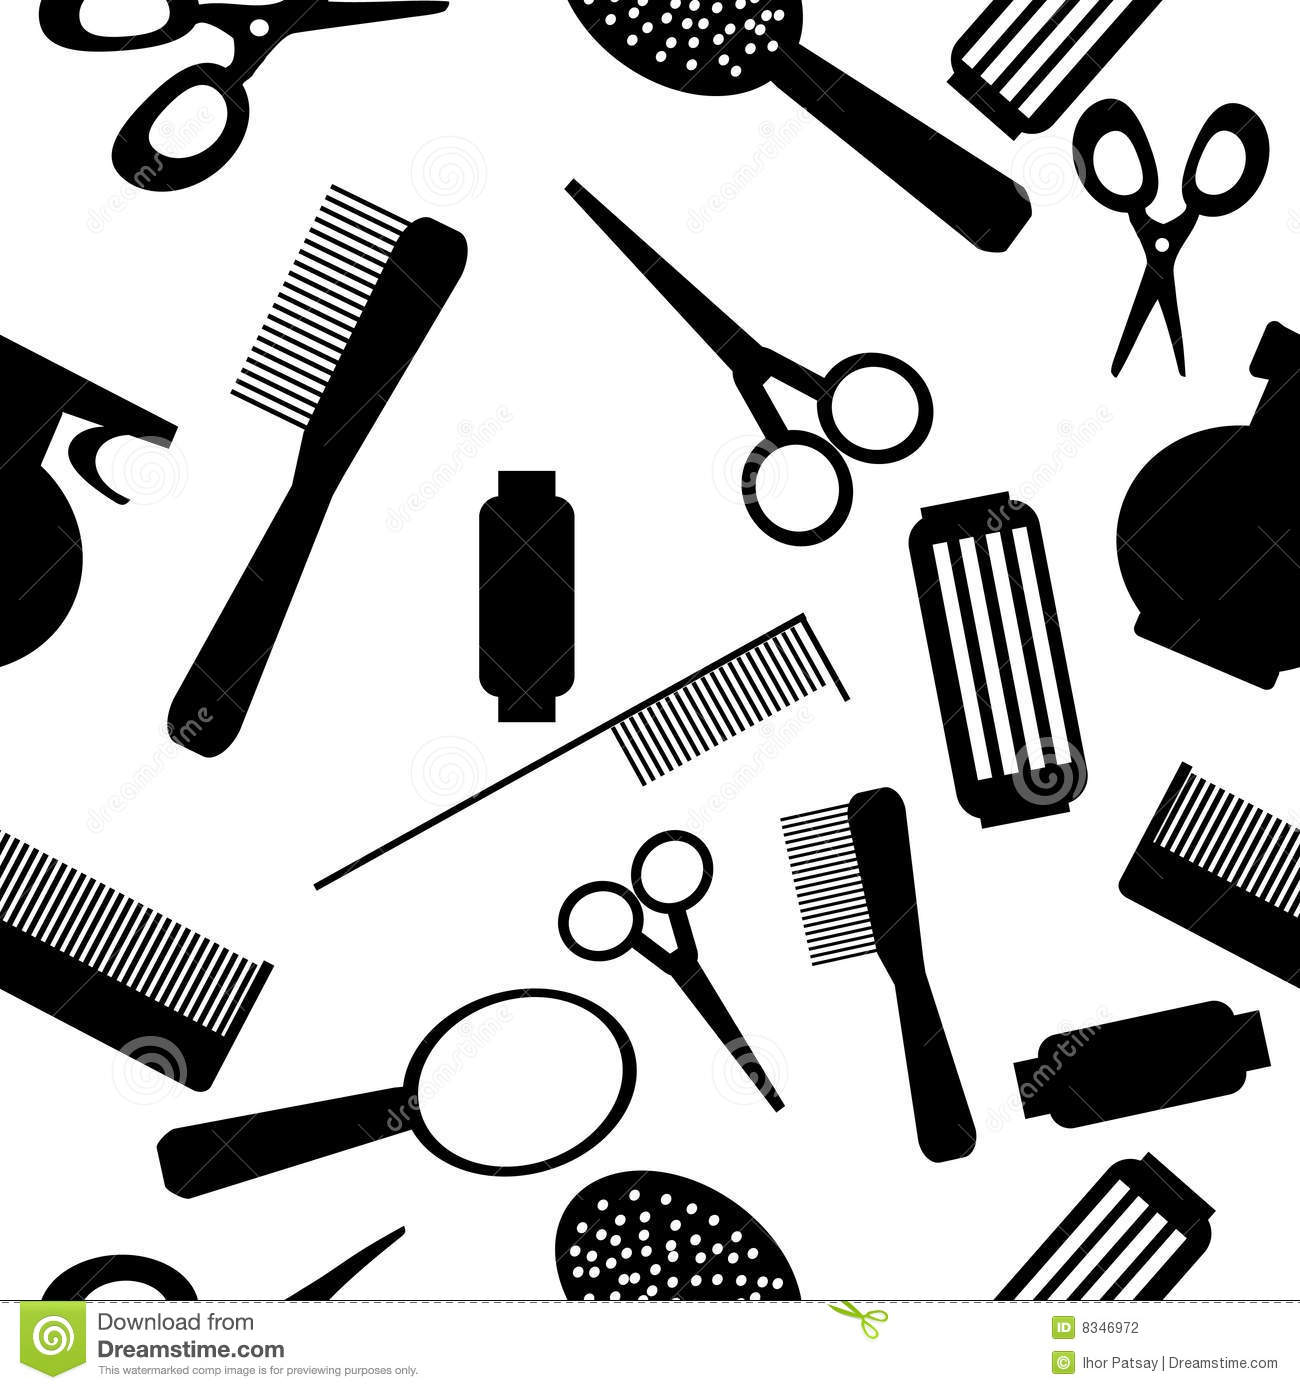 Vector Seamless Beauty Salon Background Pattern Mr No Pr No 4 3367 16